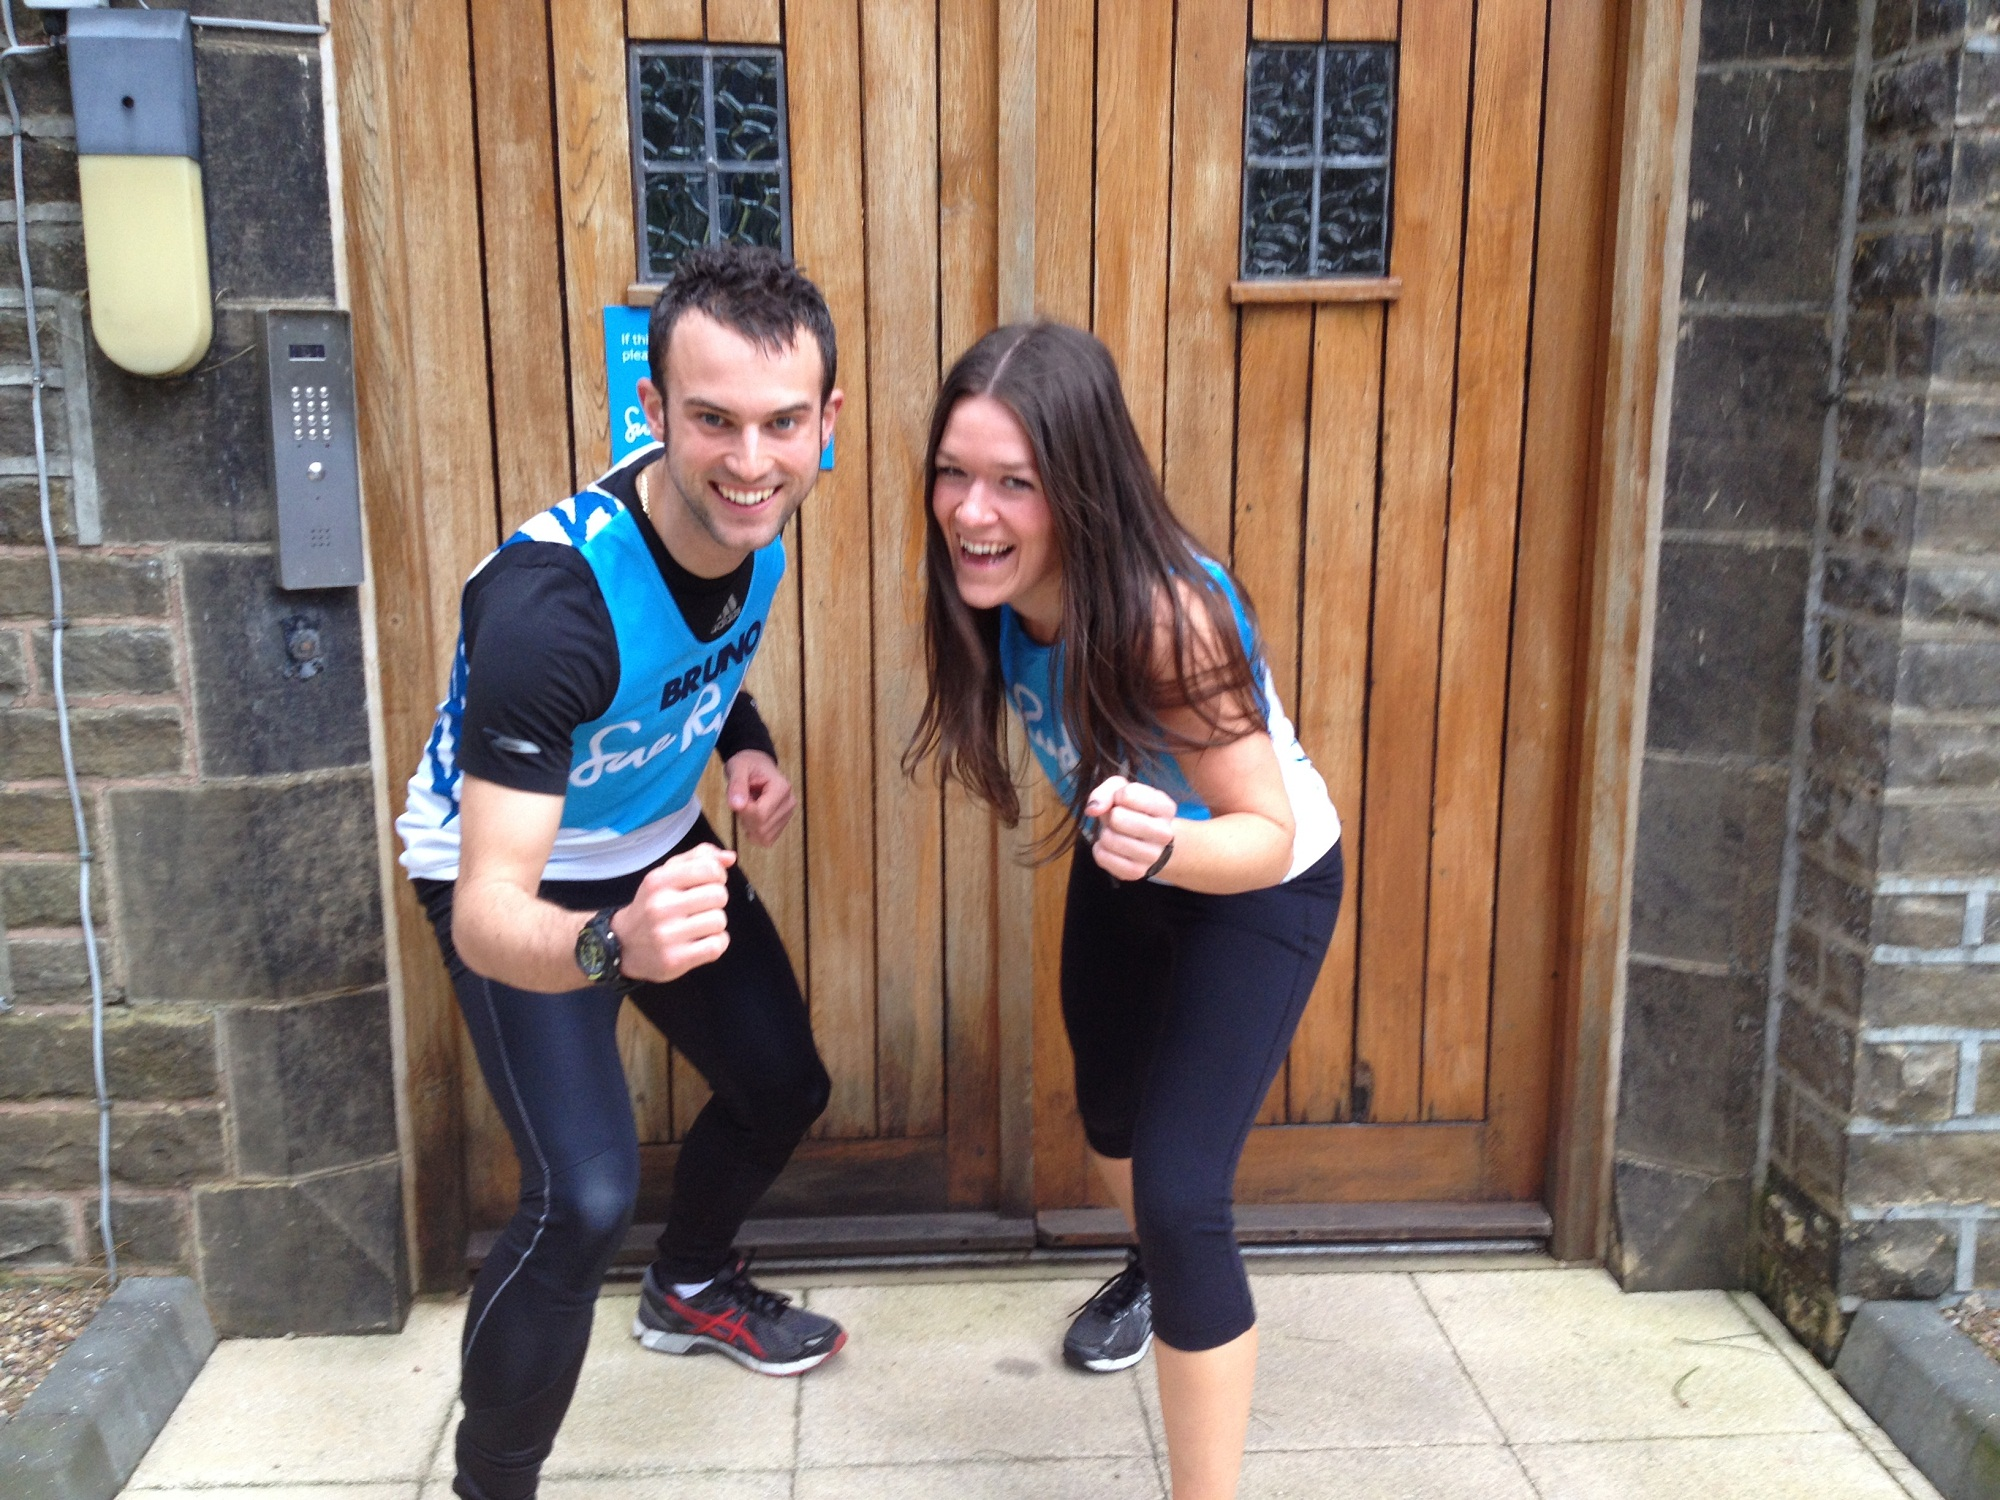 Adam Brunskill and Bethany Wise, who have taken part in running events to raise money for Manorlands